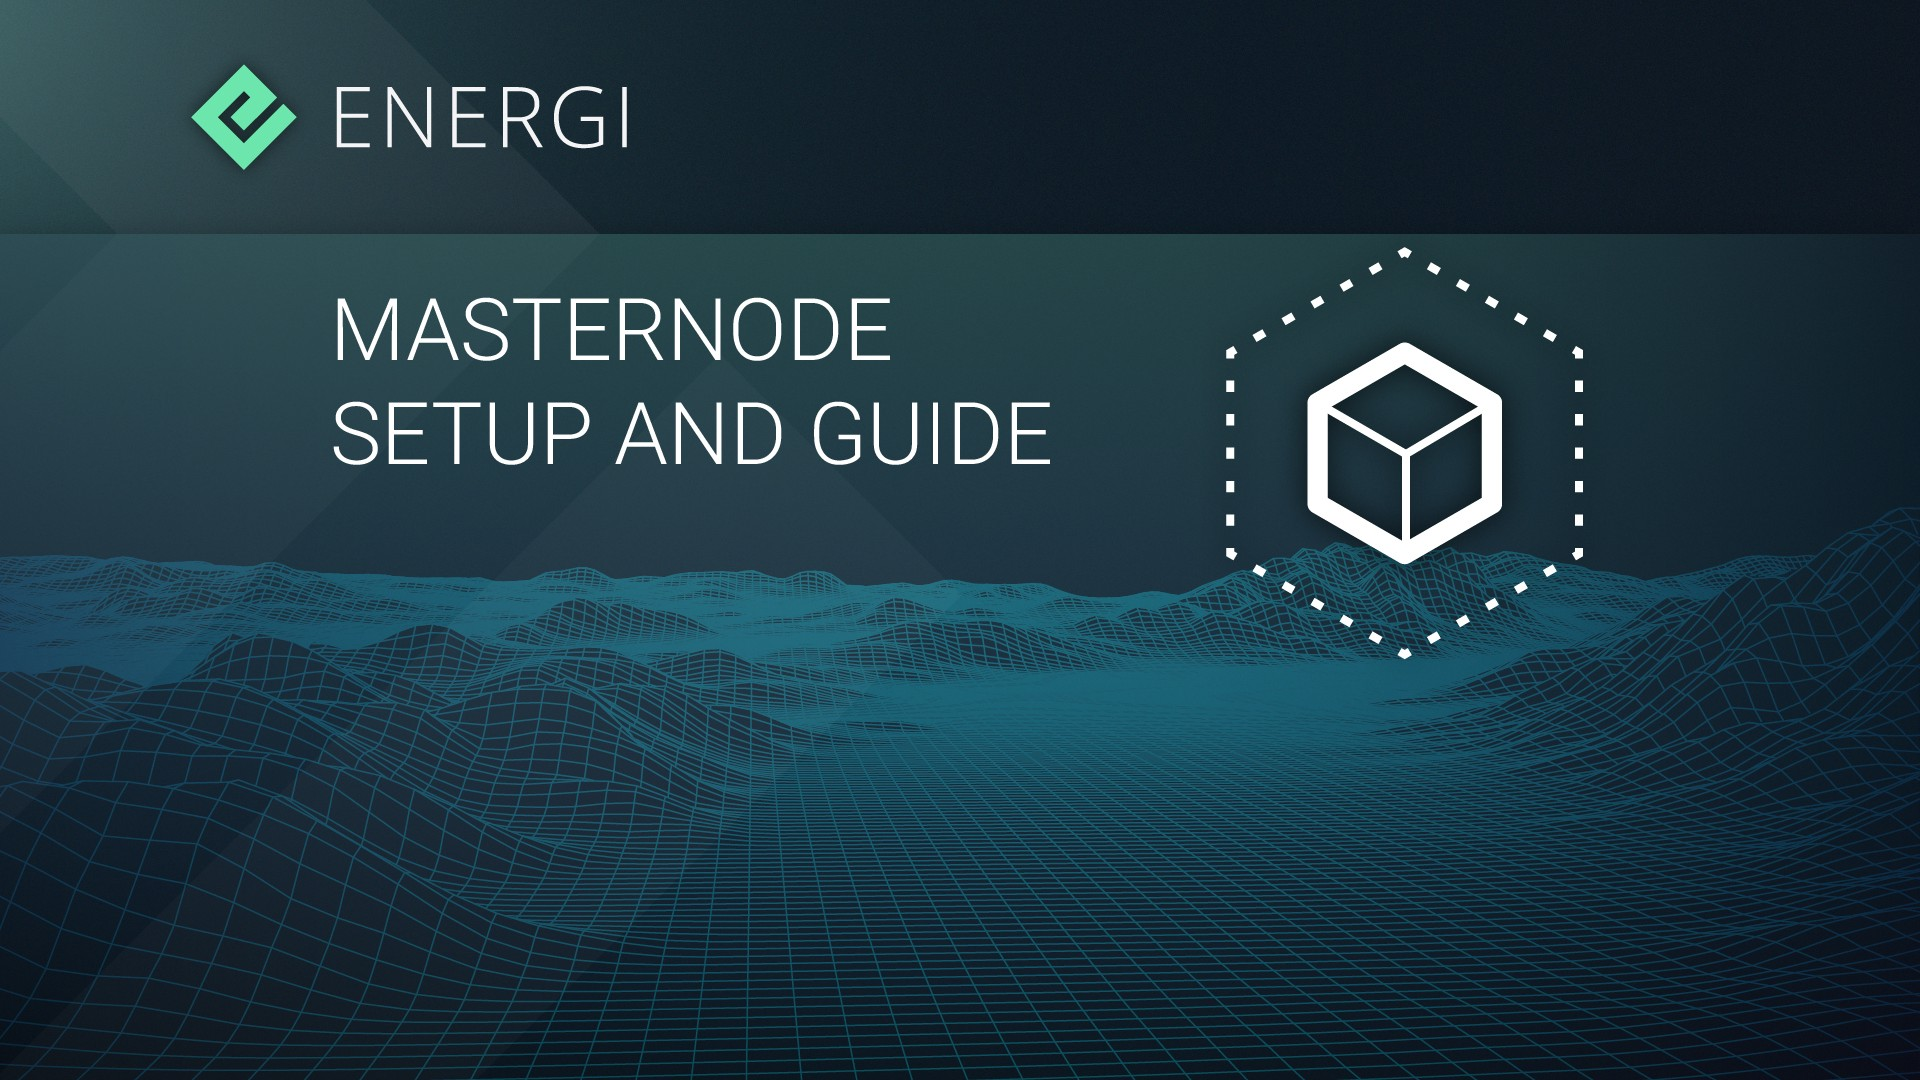 Energi Masternode Setup and Guide - Energi - Medium